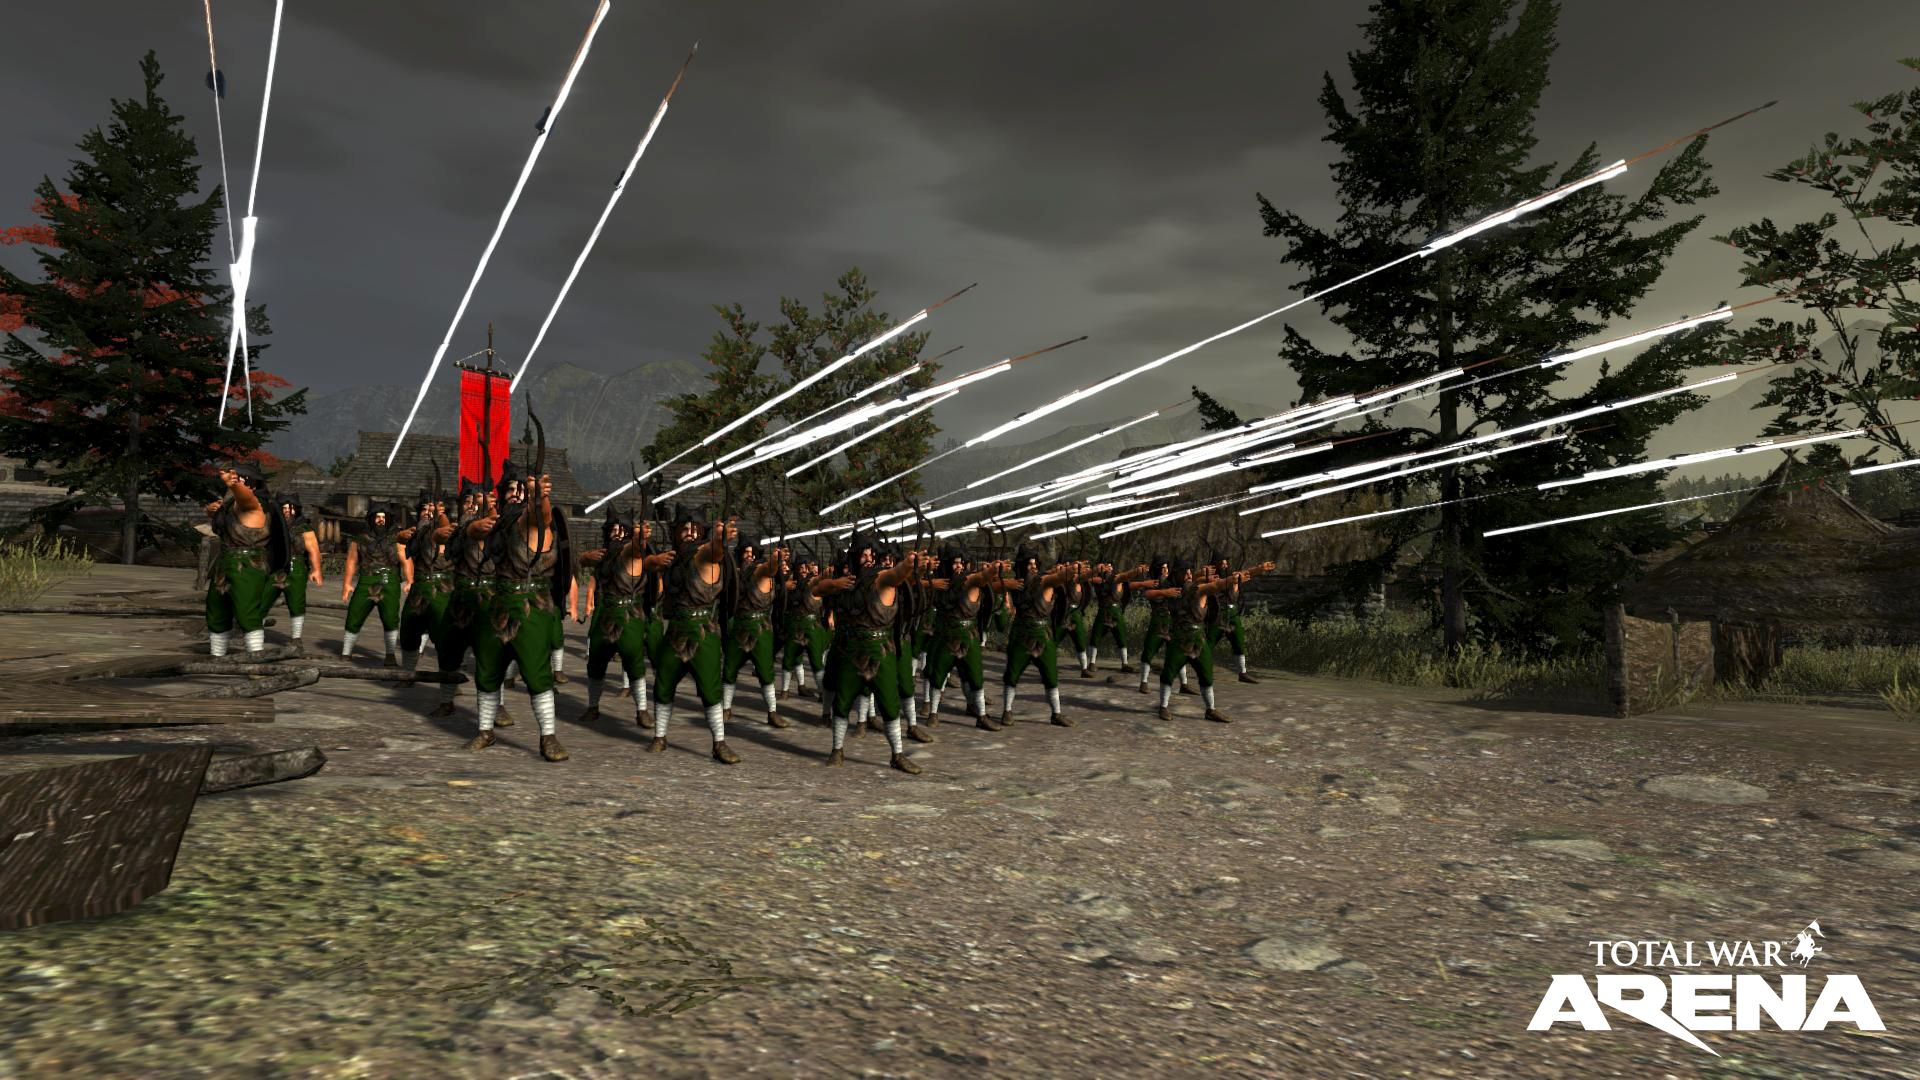 Total War Arena Screens 10